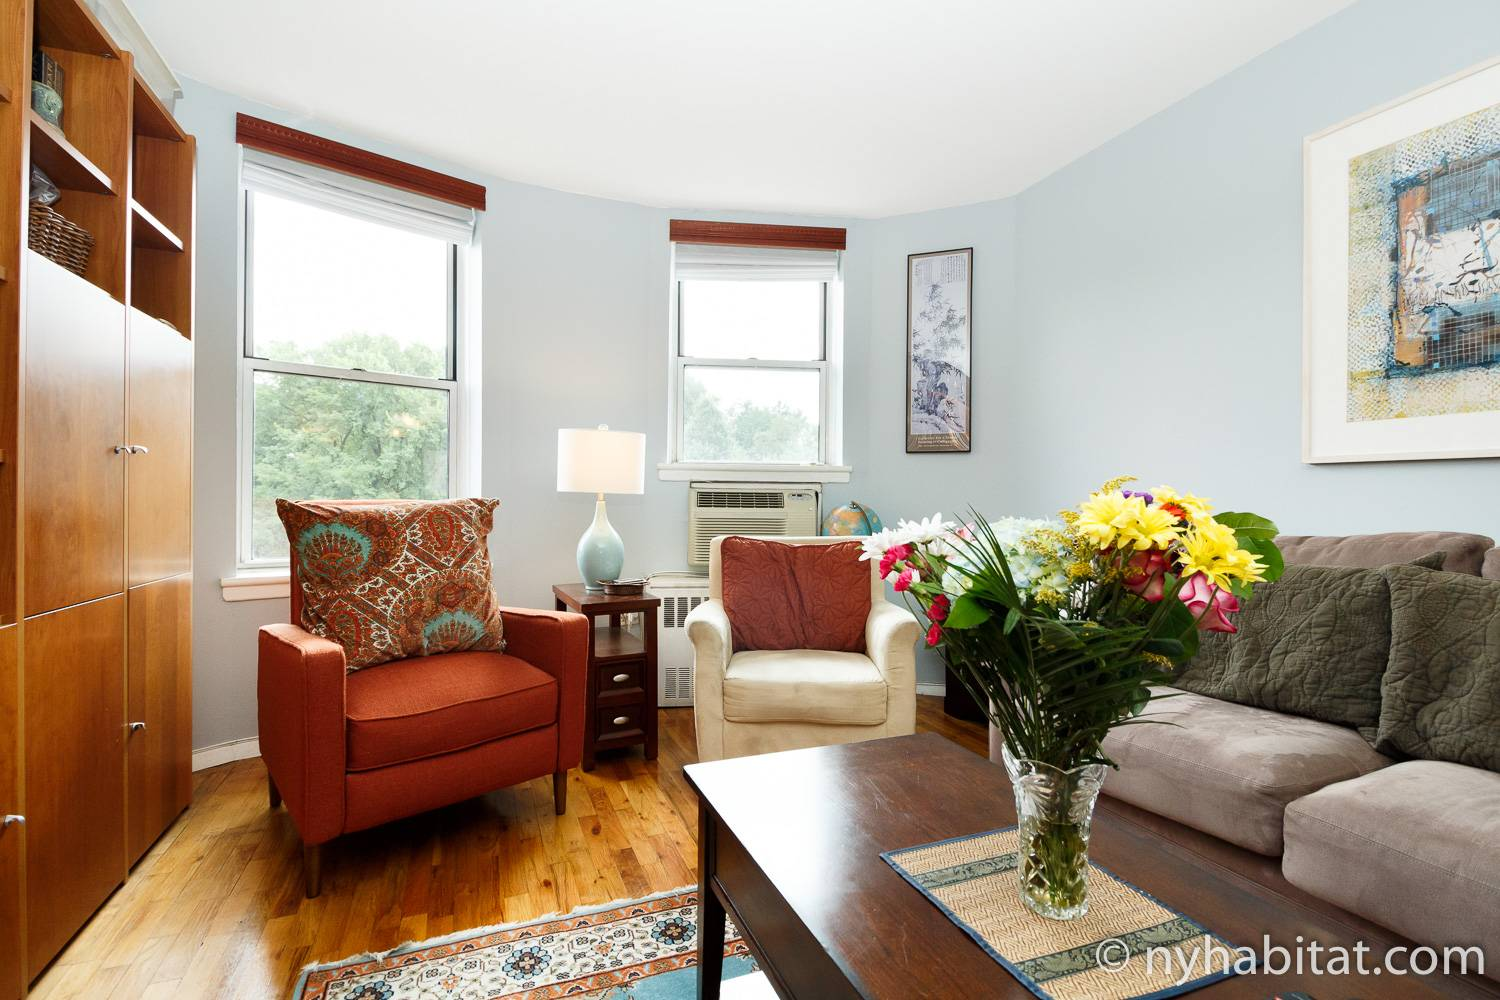 5 top rated nyc furnished apartments new york habitat blog 14853 | 5 top rated nyc furnished apartment rentals ny 14853 upper west side living room